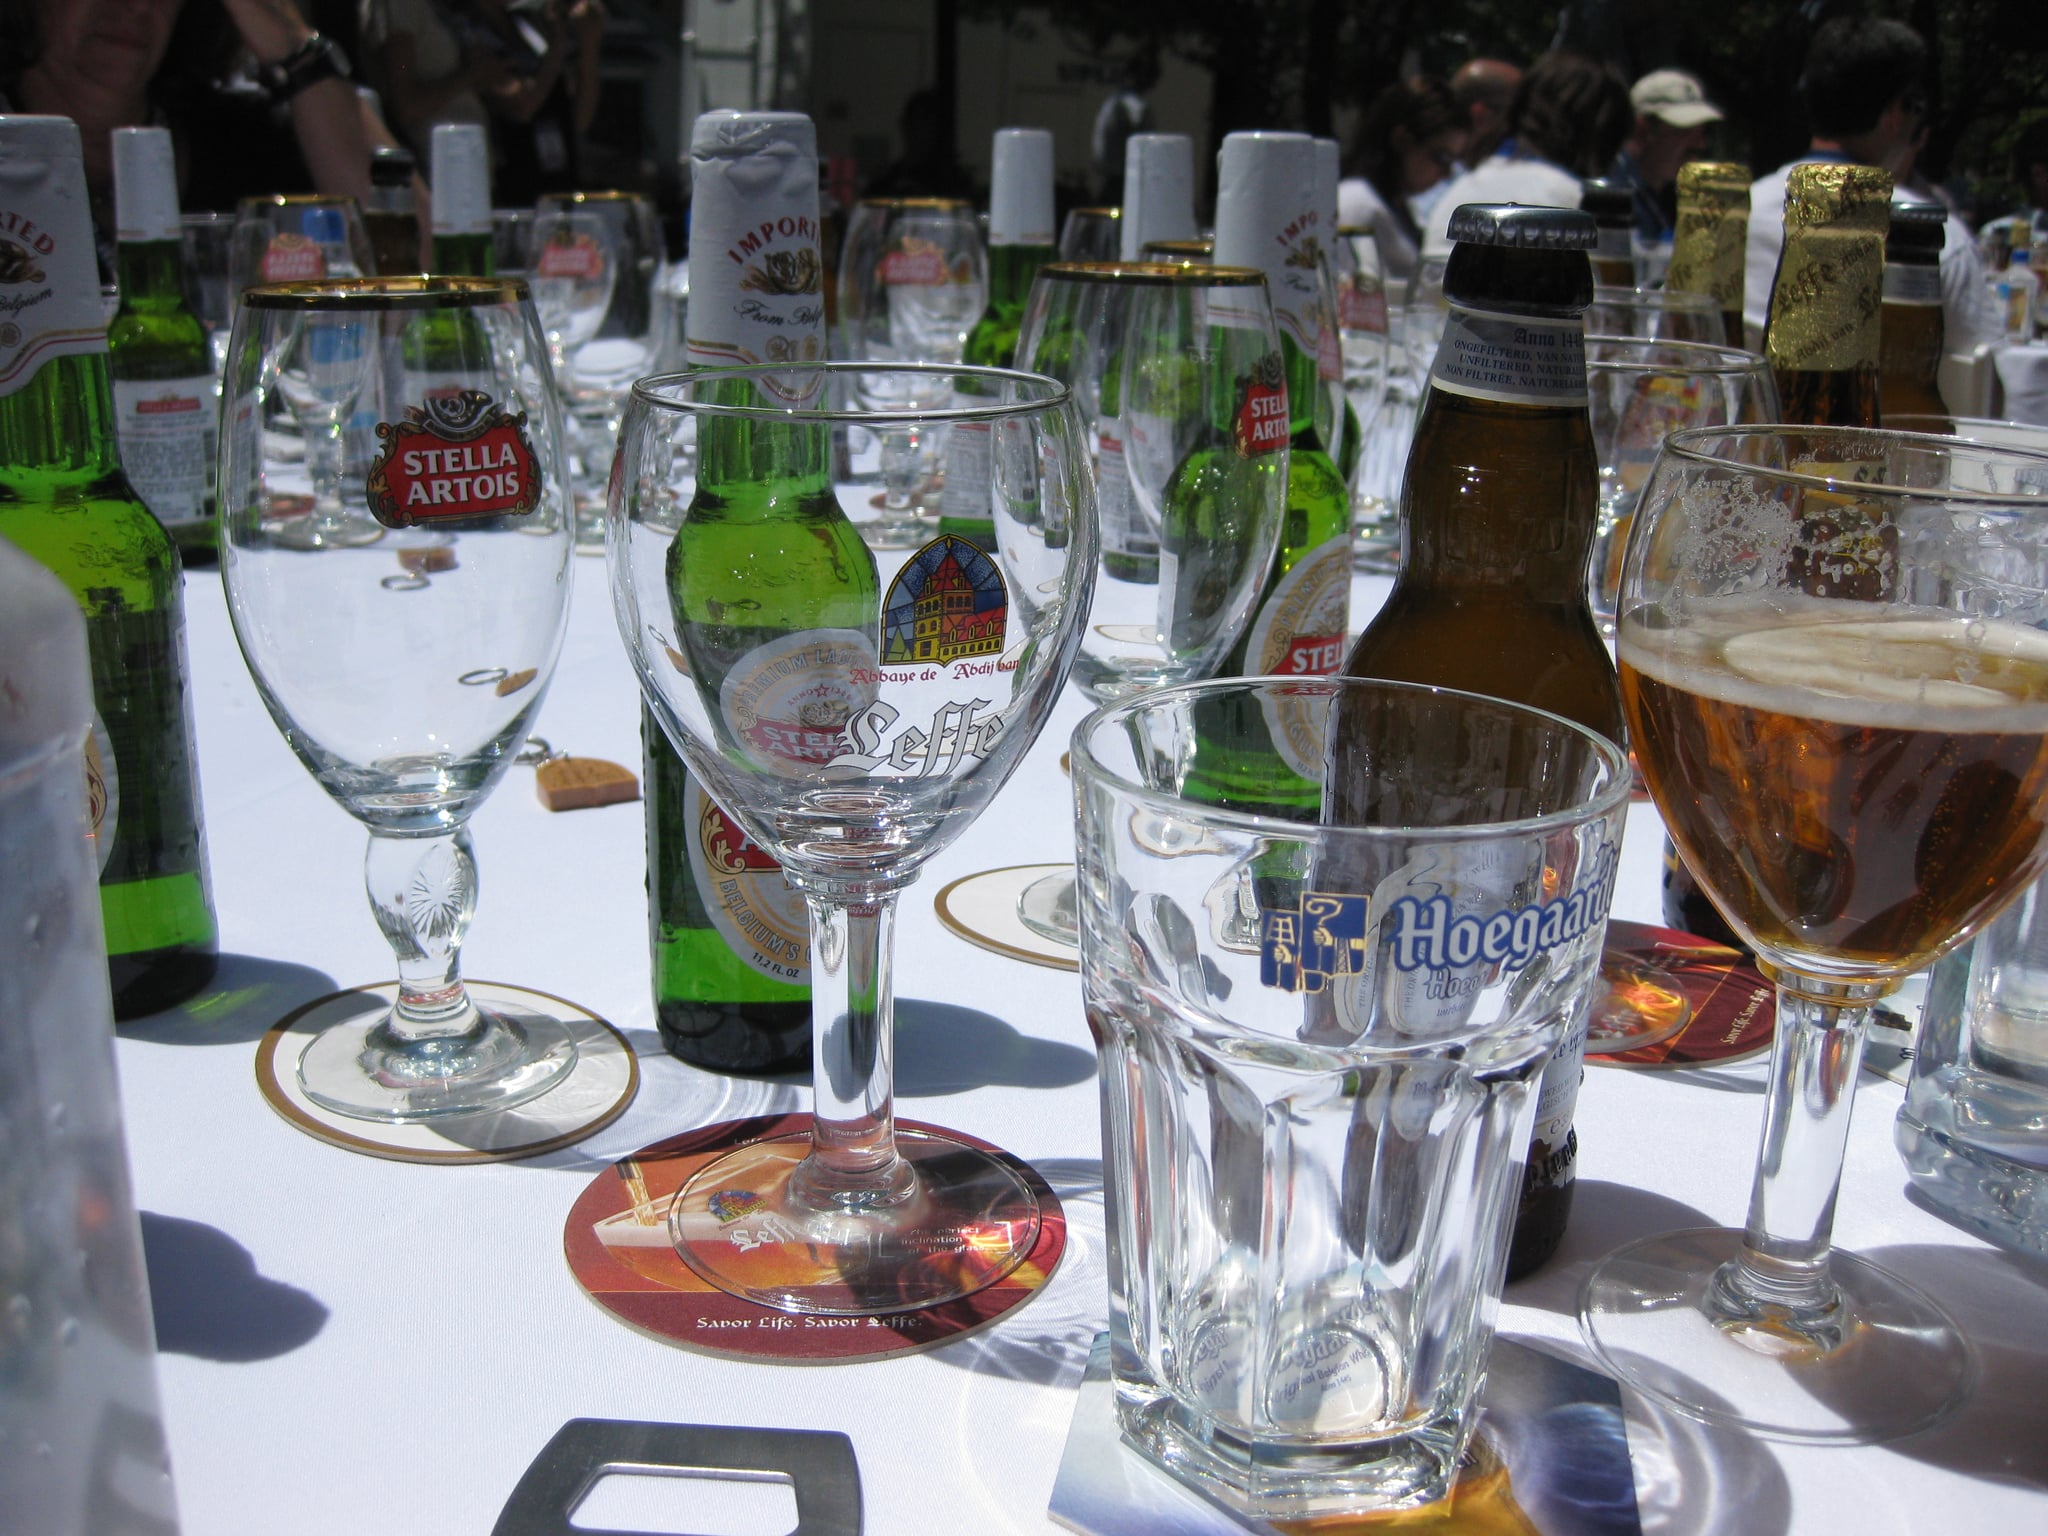 Each of the three beers required a special glass.